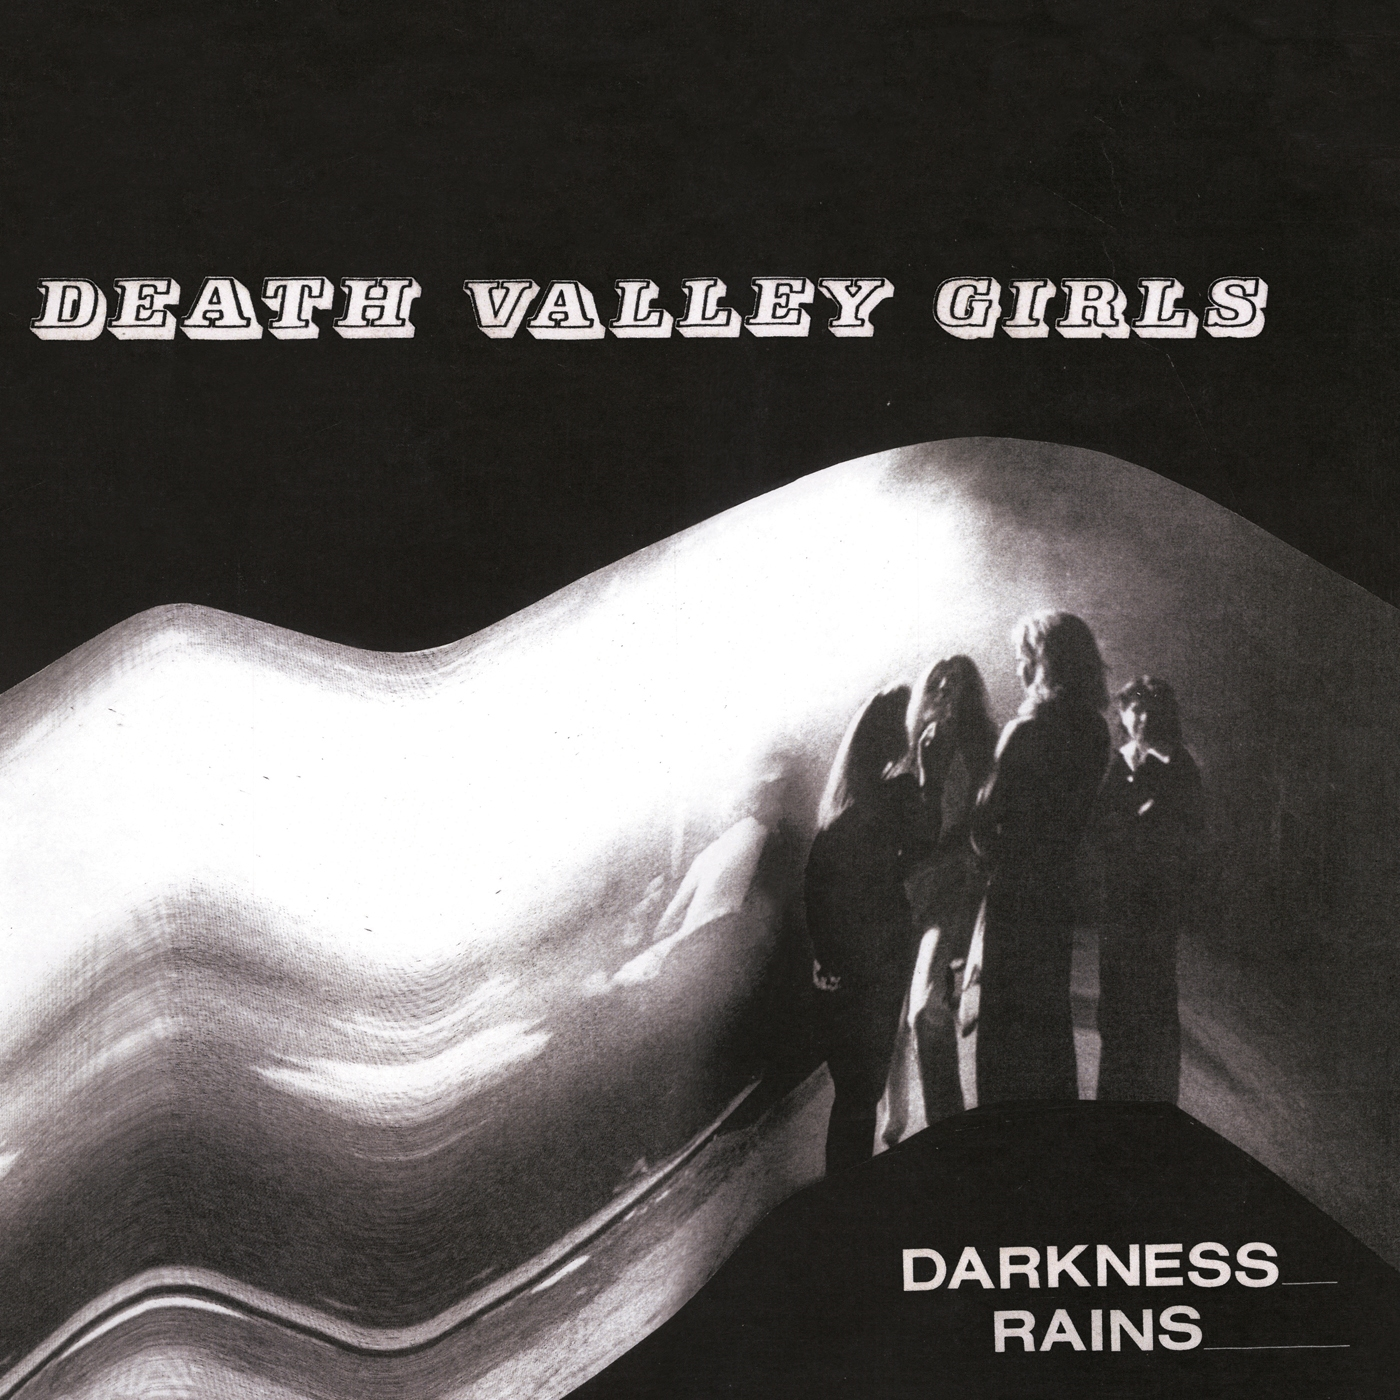 Time Travel And Sheer '70s Cool: Death Valley Girls' Darkness Rains